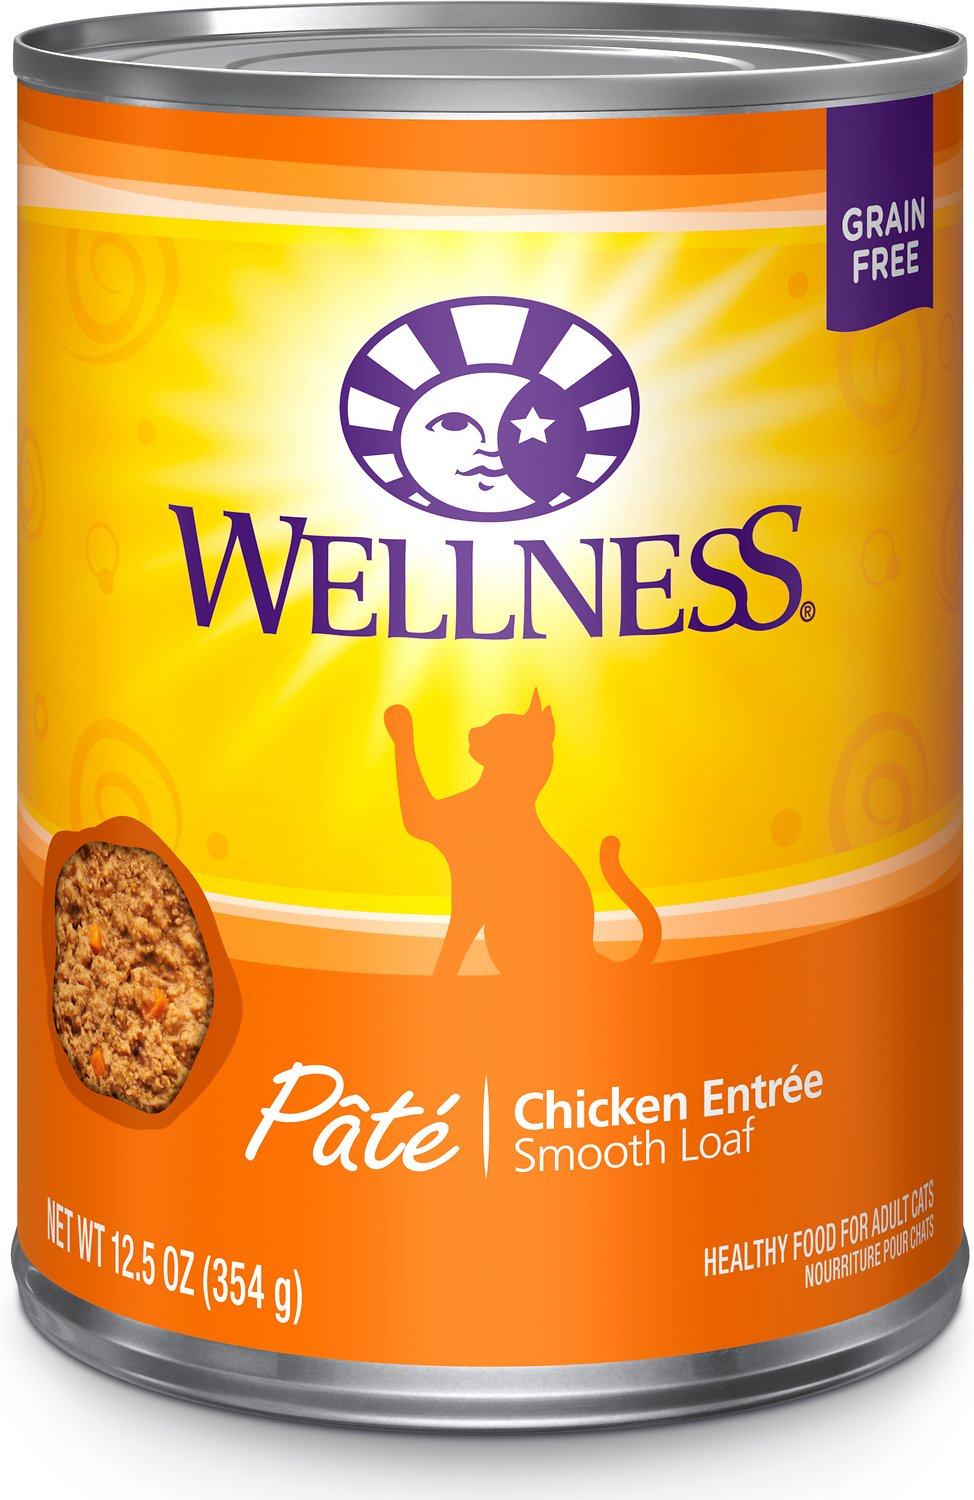 Wellness Complete Health Pate Chicken Entree Grain-Free Canned Cat Food, 12.5-oz